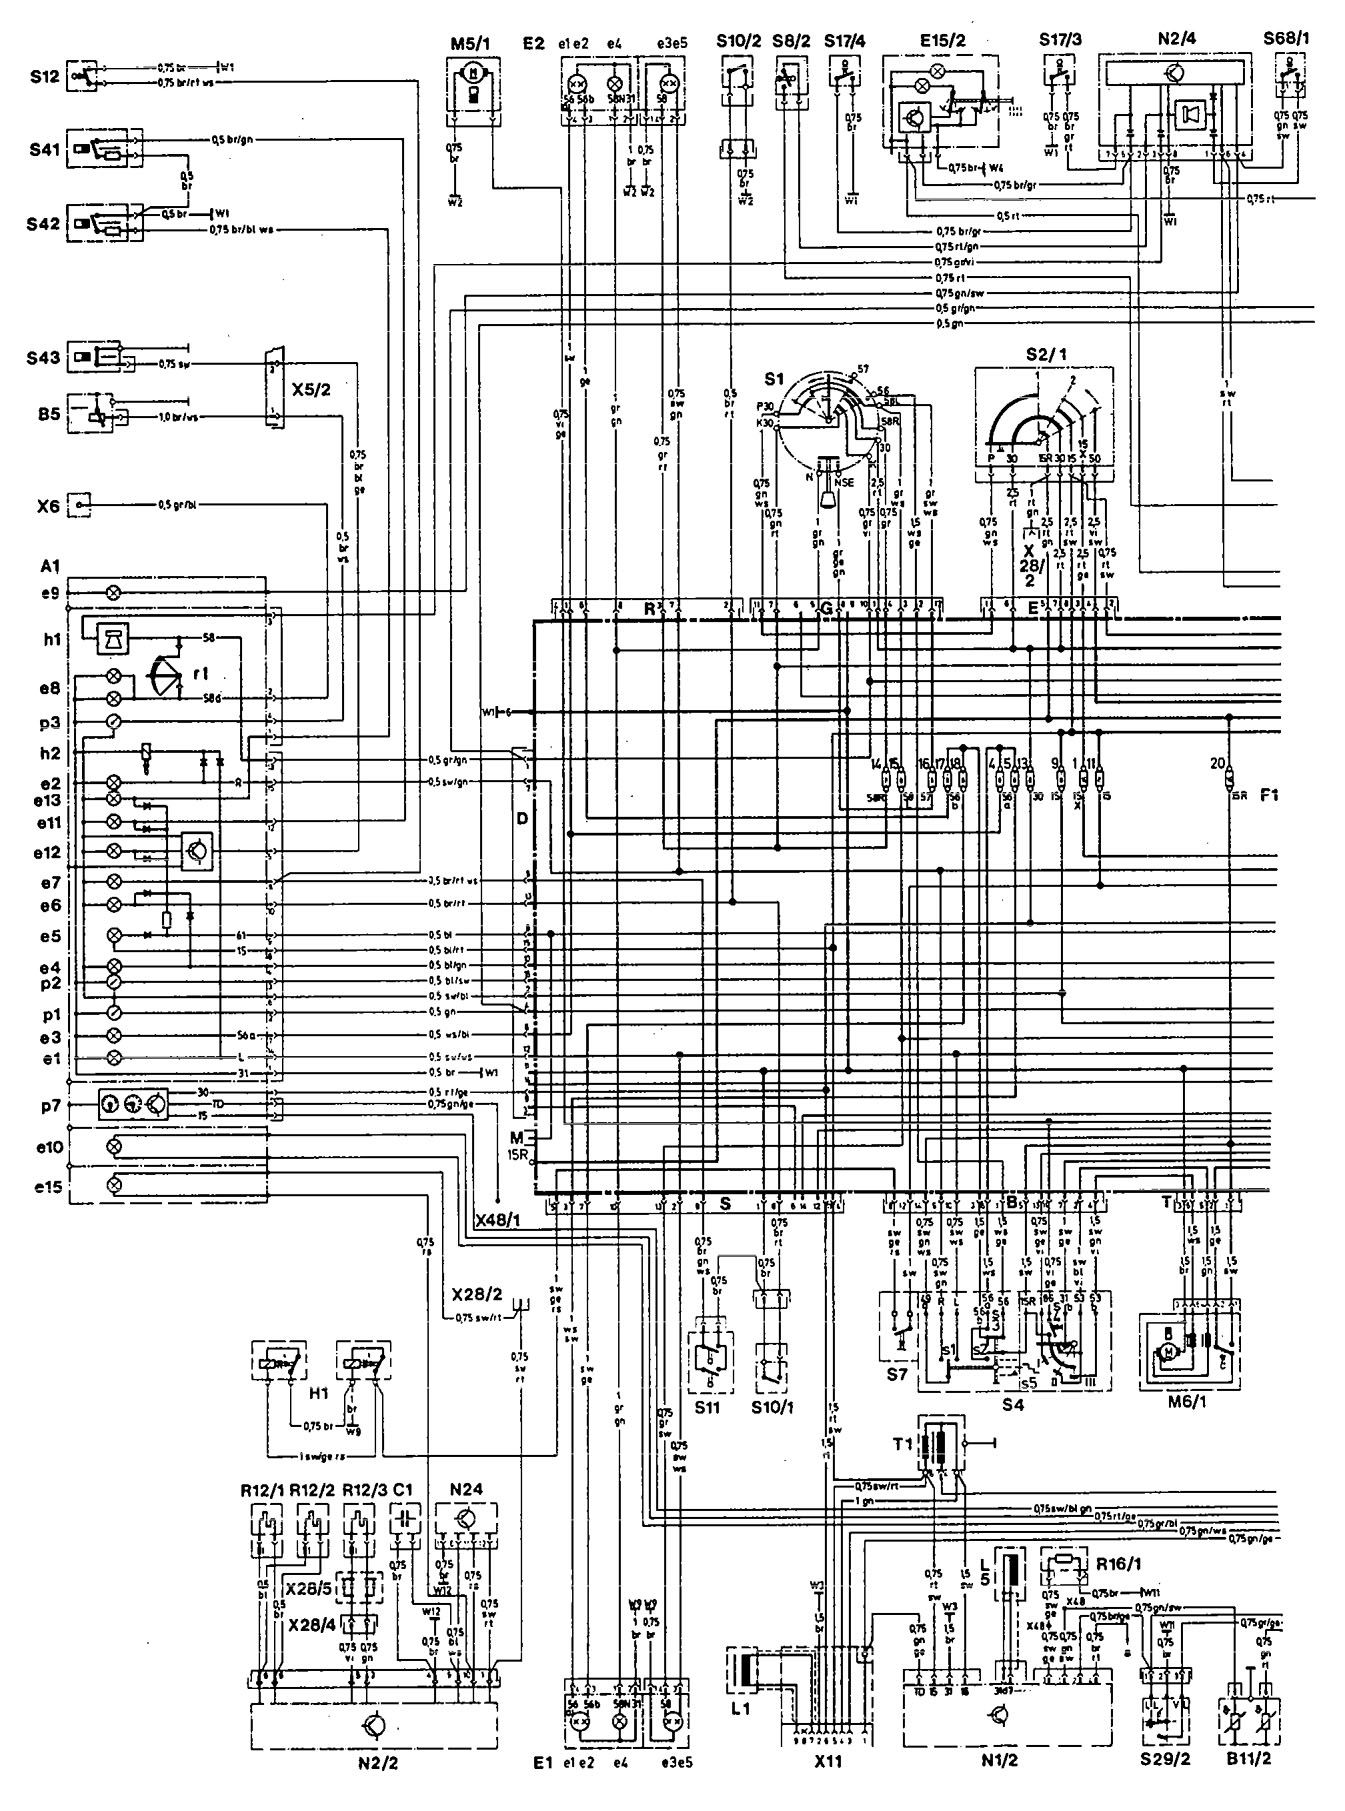 1993 Mercedes 190e Fuse Box Trusted Wiring Diagrams S420 Diagram U2022 Benz 2 6